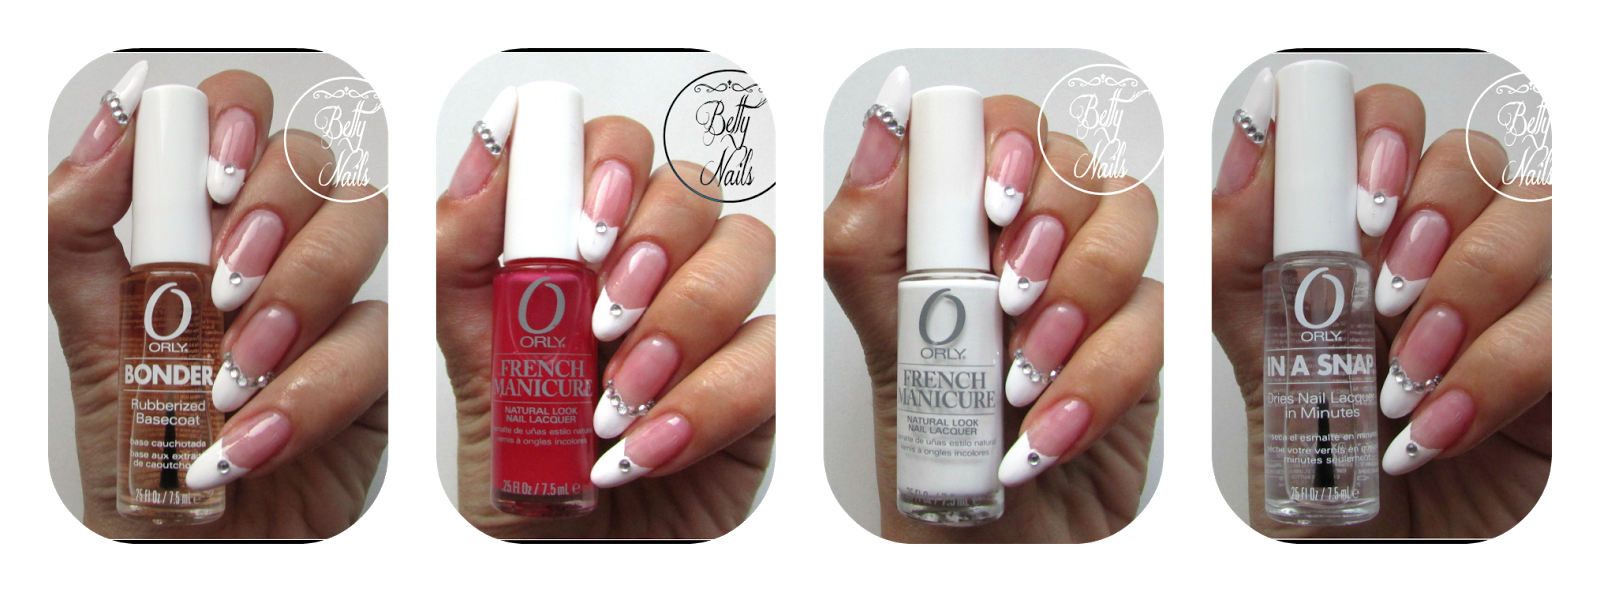 Betty Nails: ORLY | French Manicure Kit [Review]